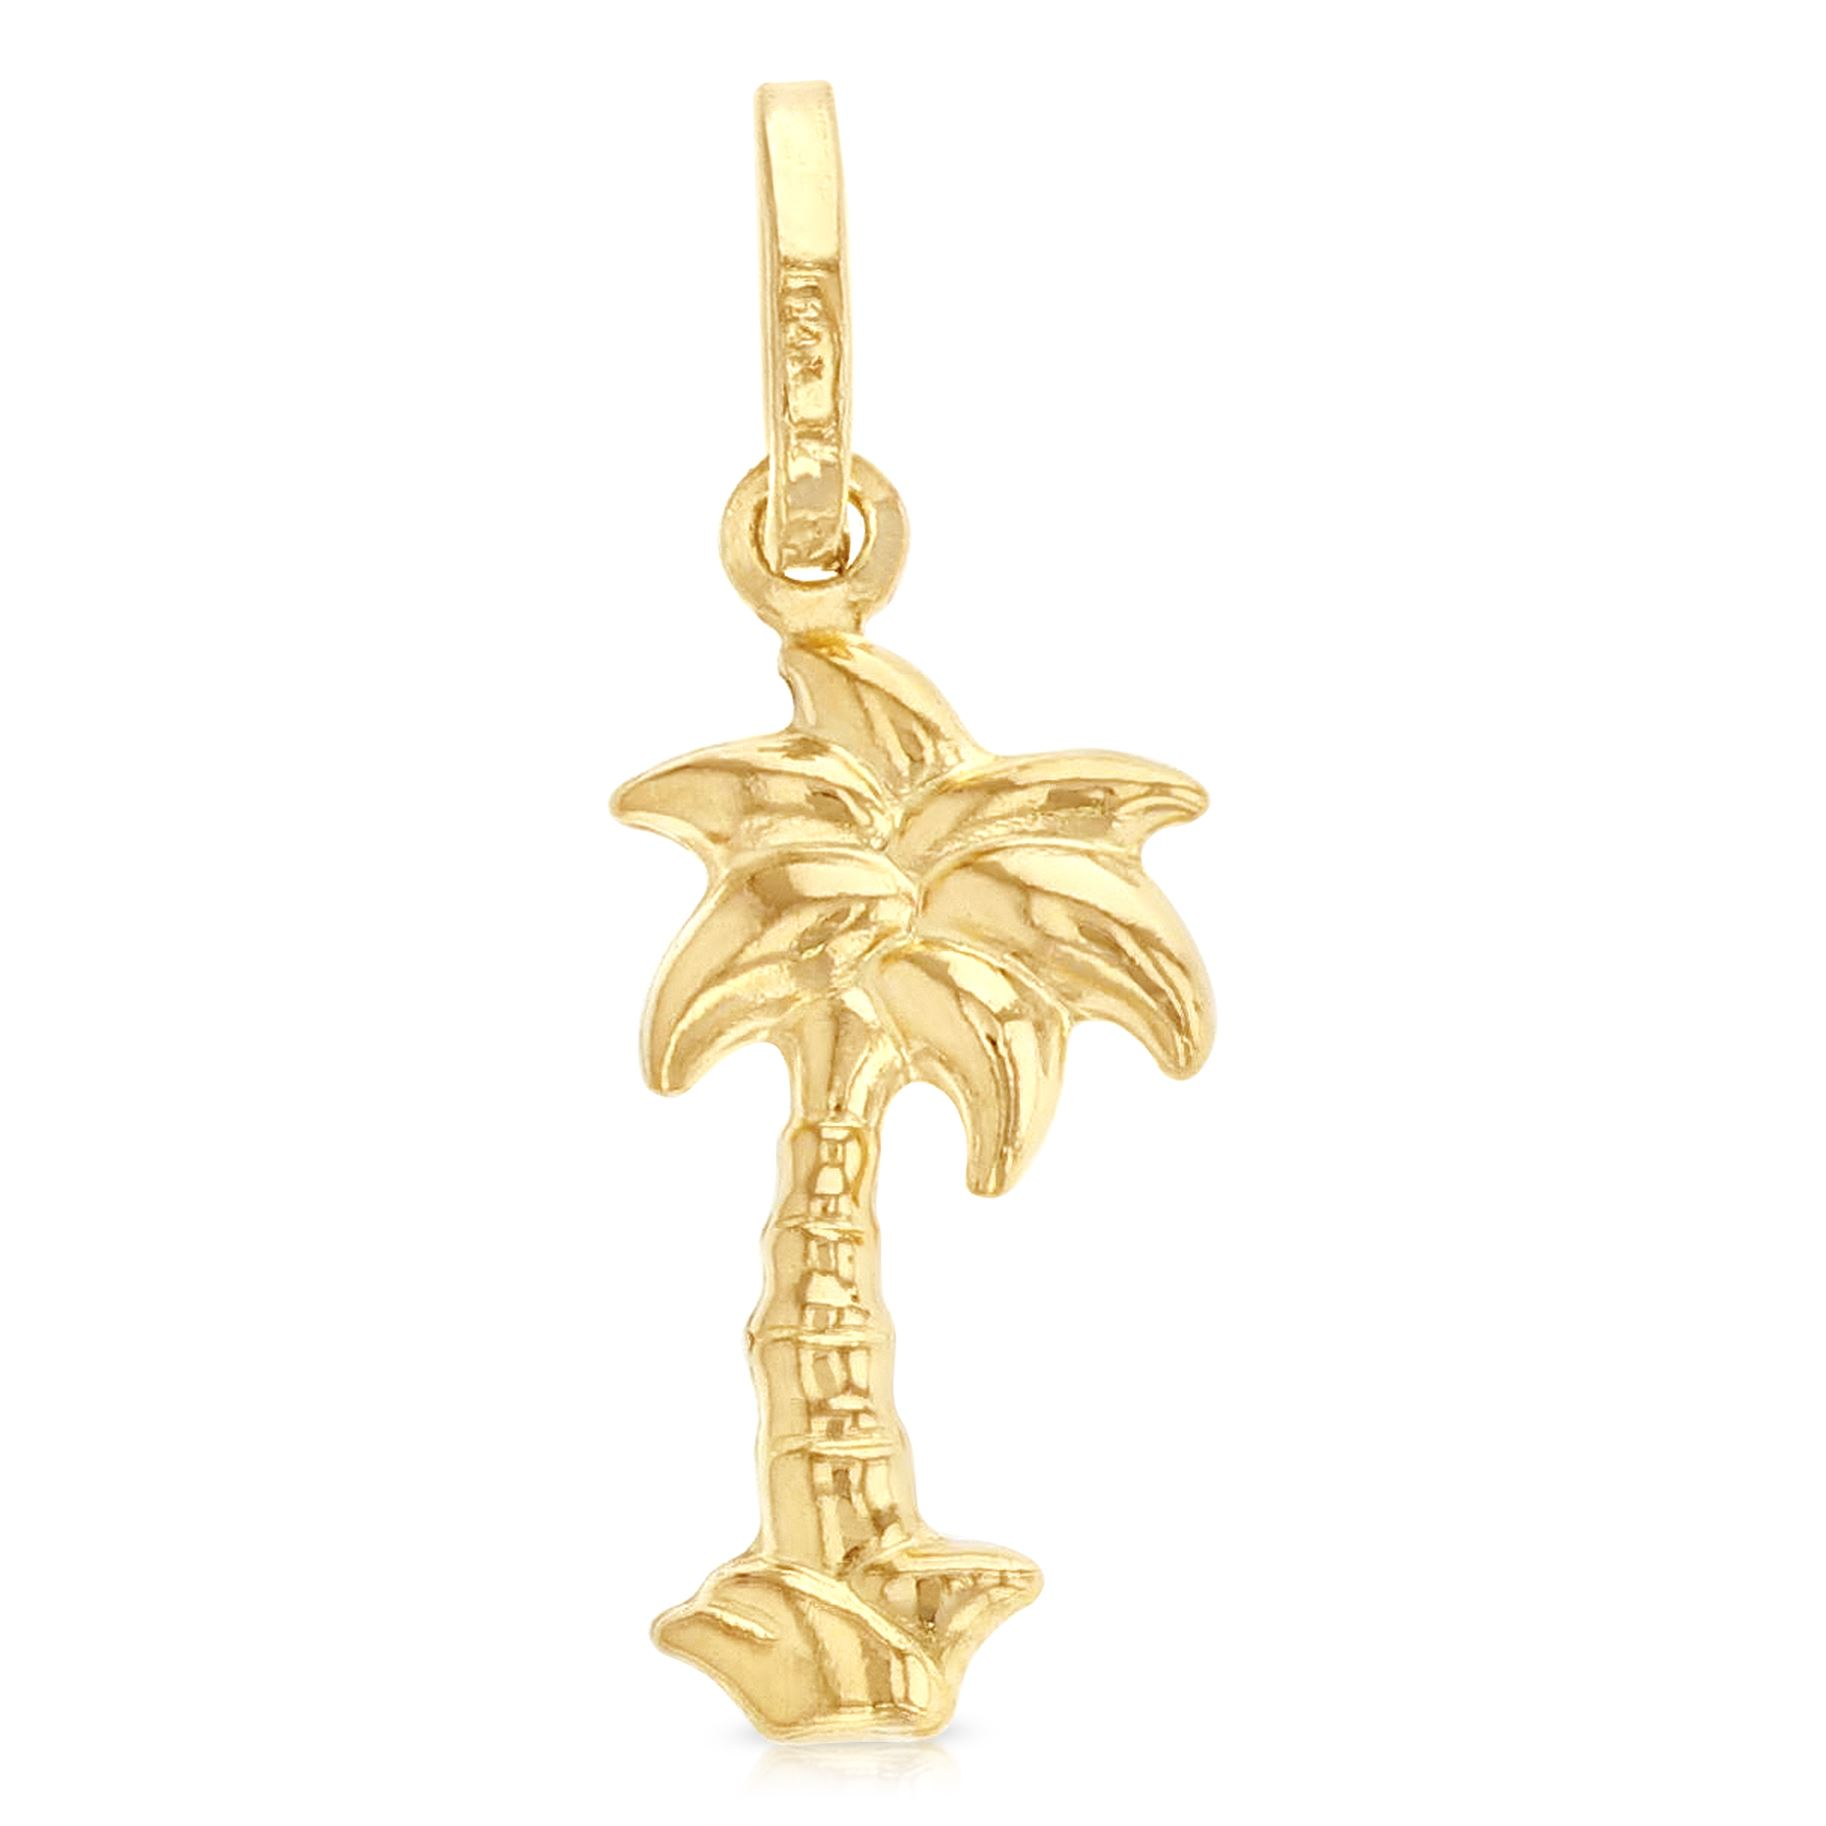 14K Yellow Gold Religious Crucifix Charm Pendant with 0.8mm Box Chain Necklace